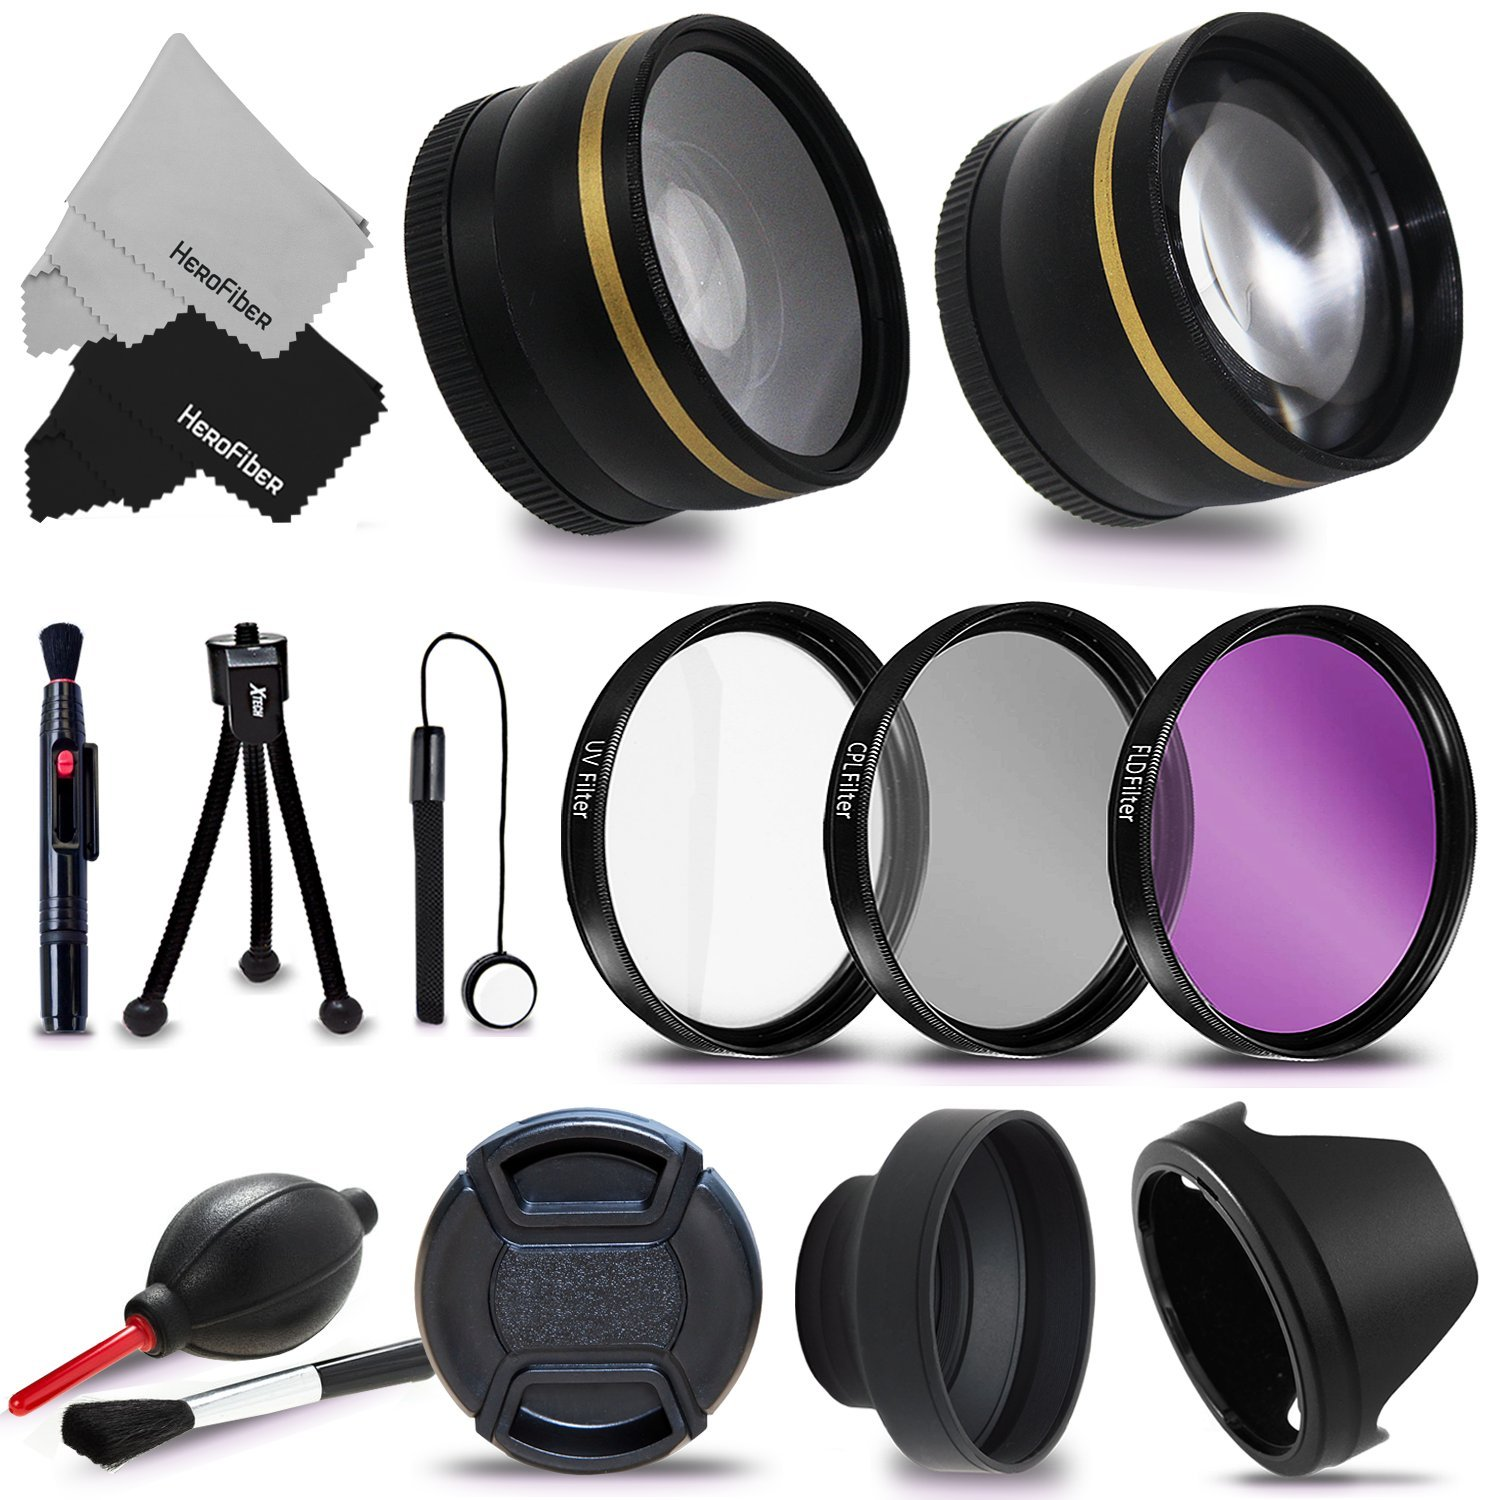 Essential 58mm Accessory Kit for CANON EOS REBEL T5i T4i T3i T2i T1i XTi XT SL1 XSi, EOS 700D 650D 600D 55D DSLR Cameras - Includes: High Definition Wide Angle Lens with Macro Closeup feature, + High Definition 2X Telephoto Lens + 3 Piece HD Filter Set +